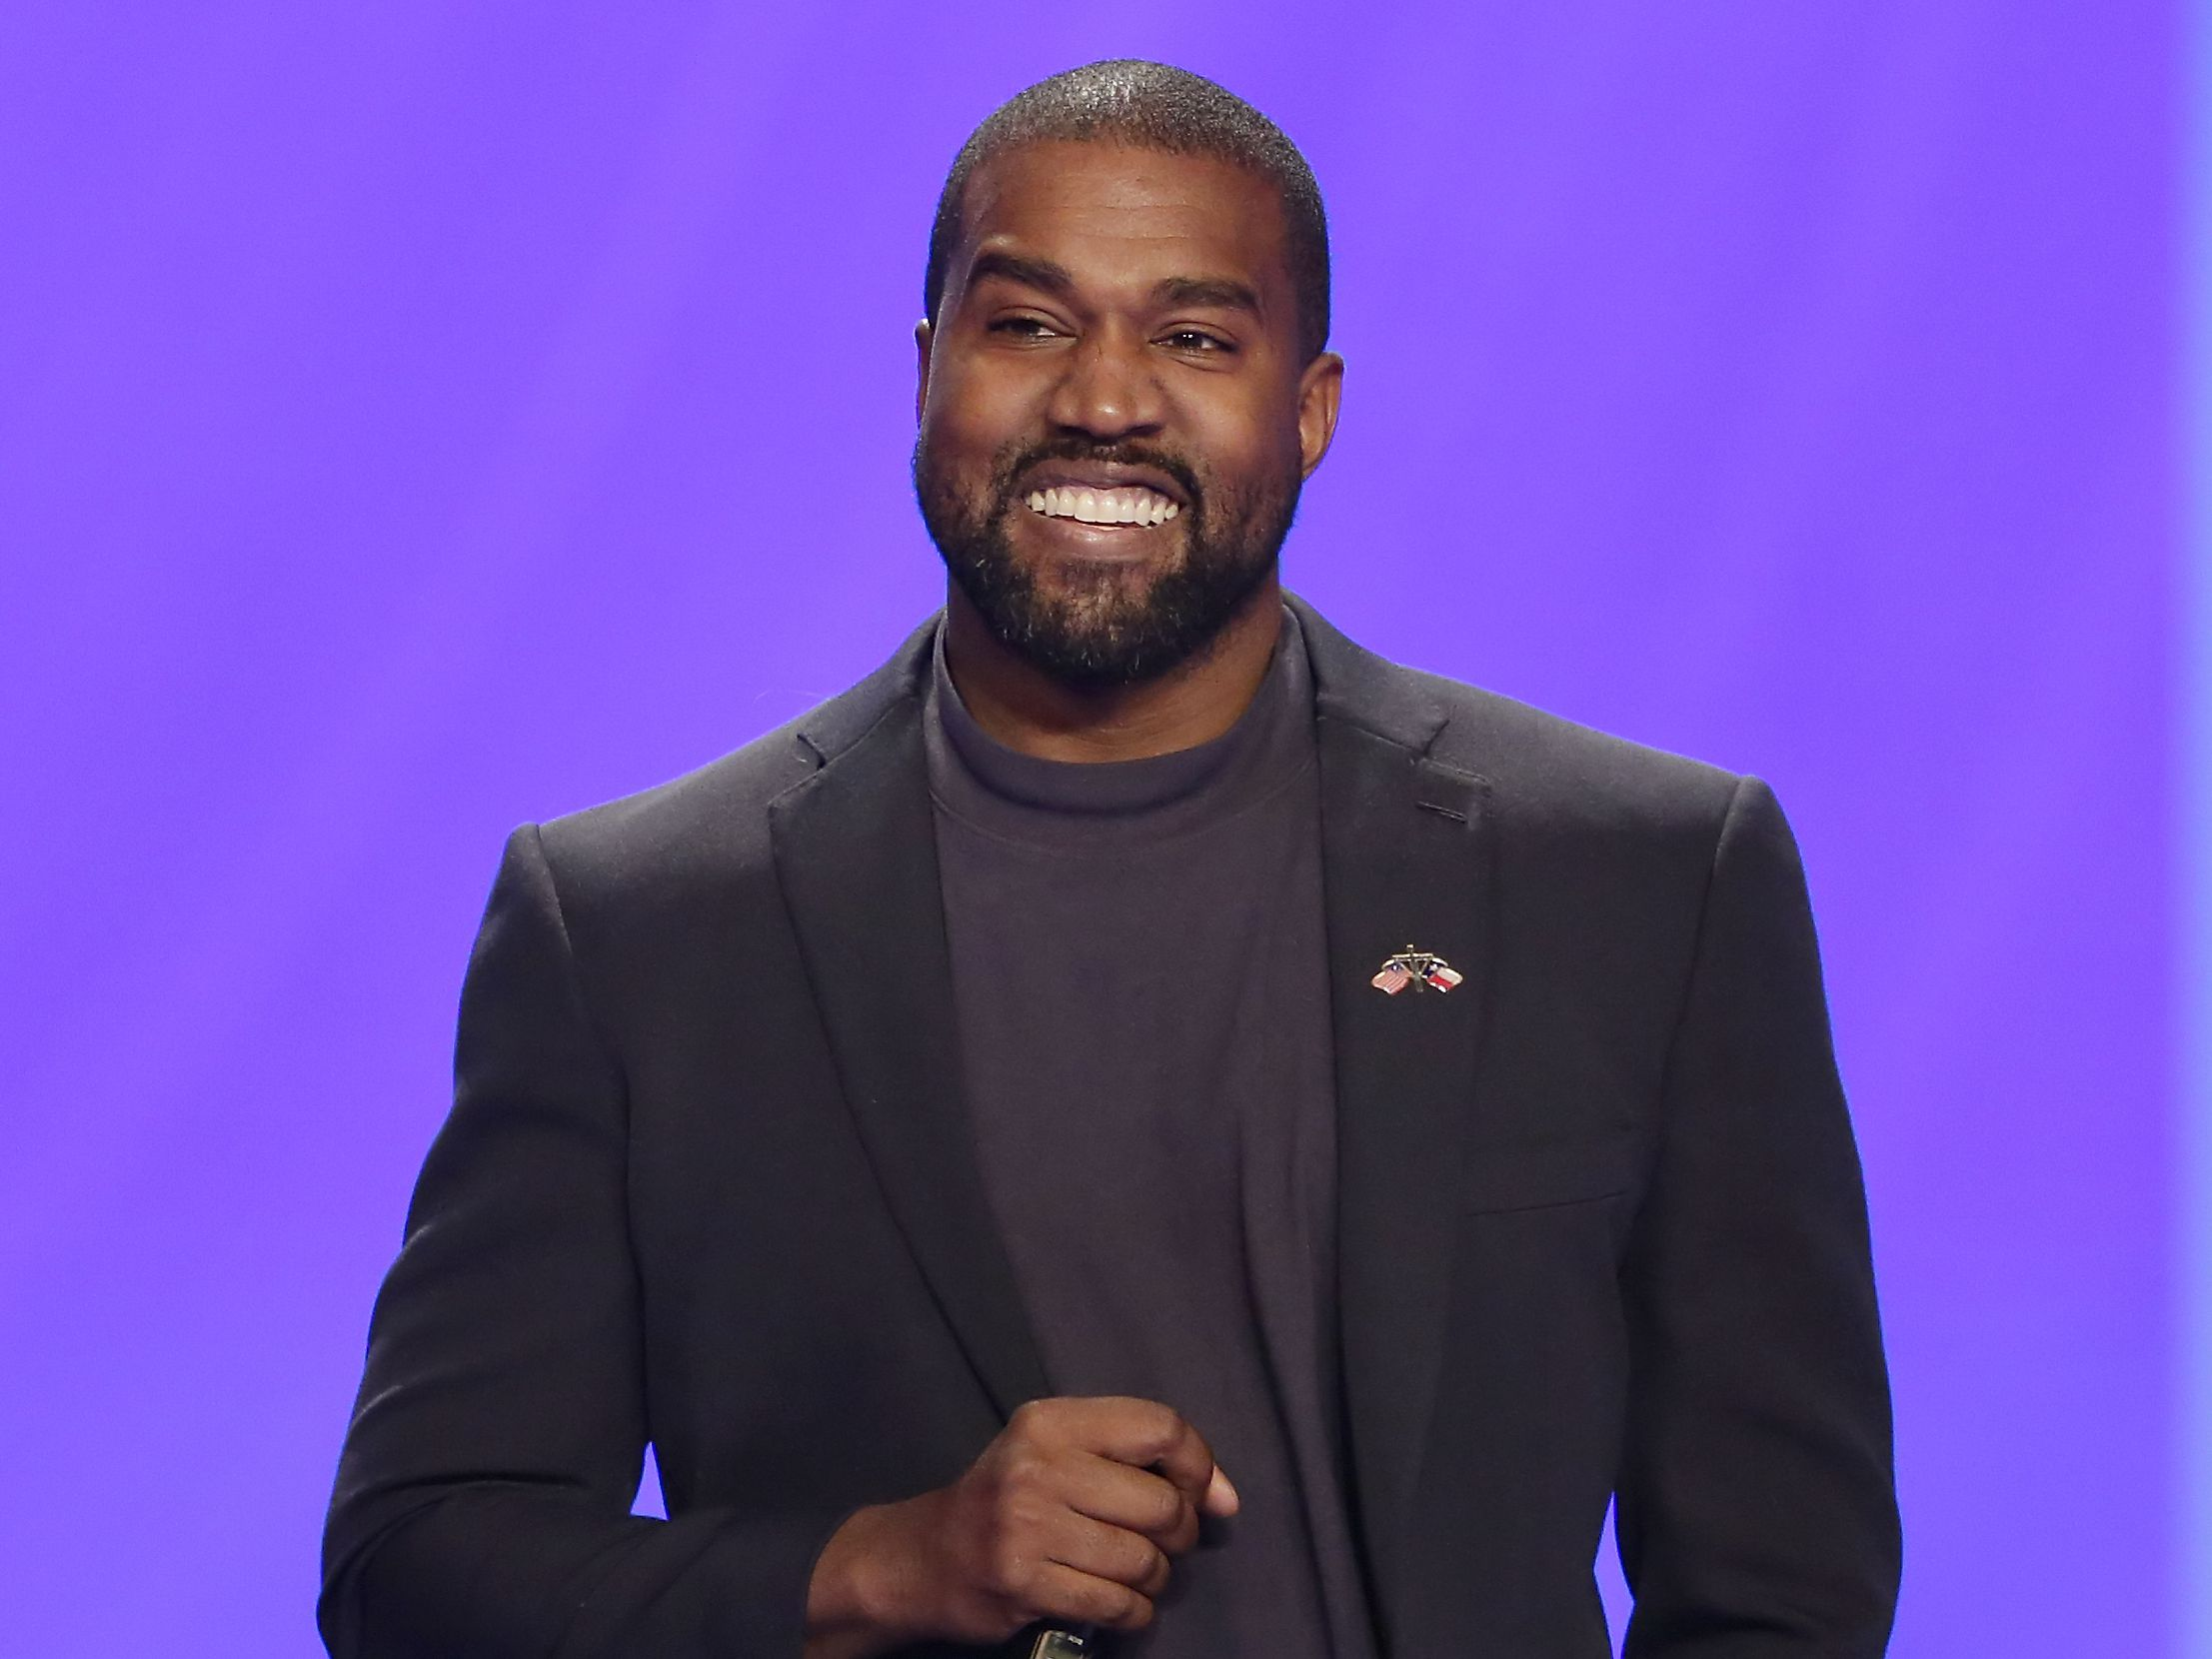 Kanye West tweets he's running for president